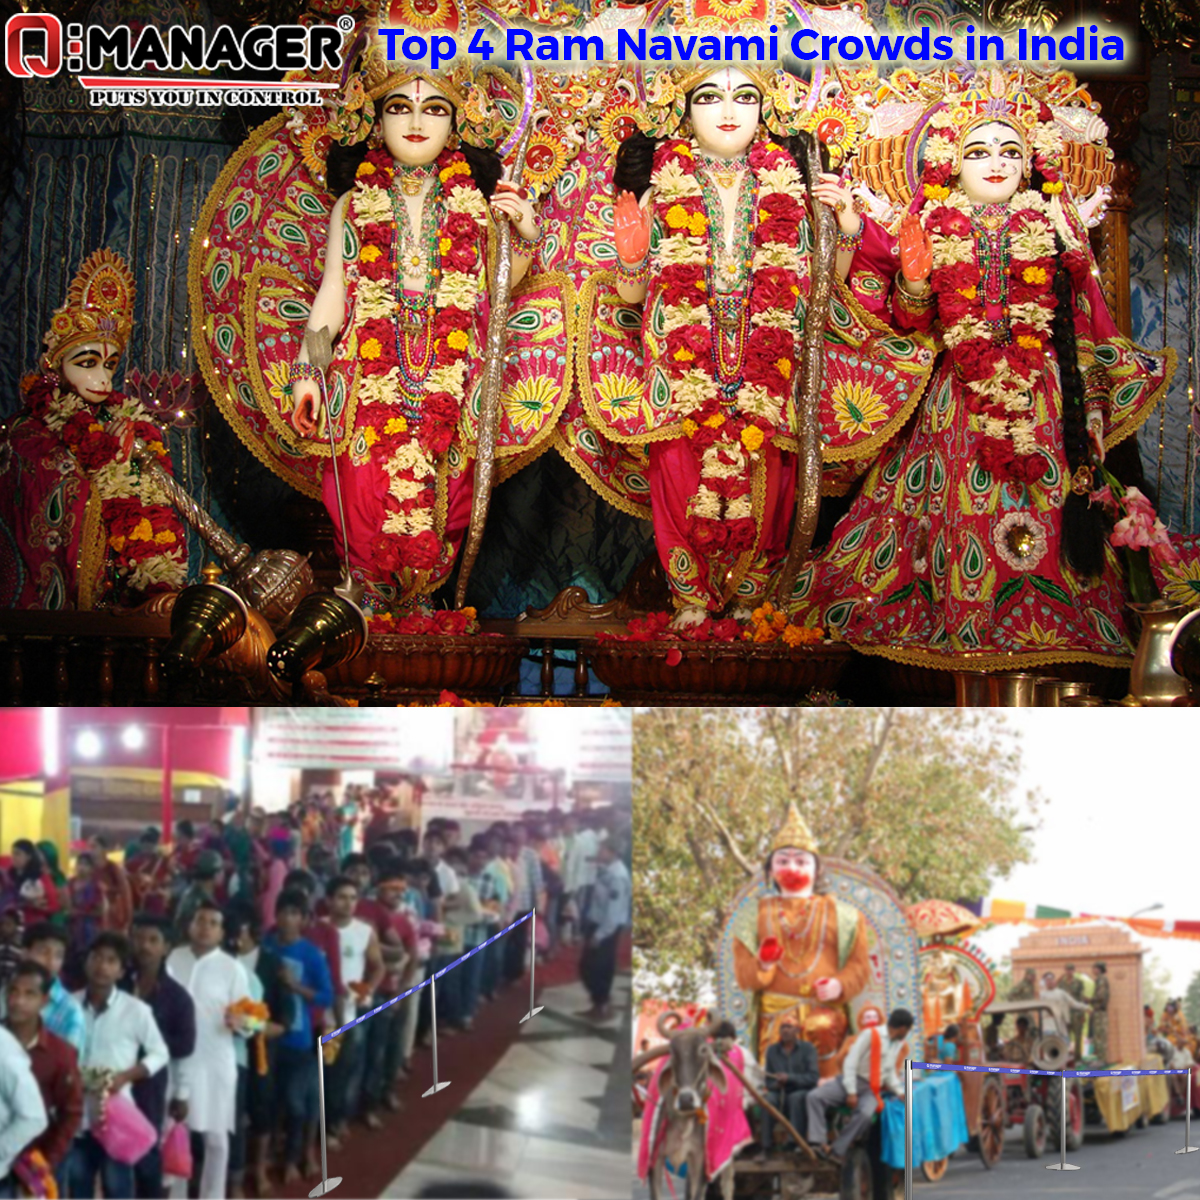 Top 4 Ram Navami Crowds in India